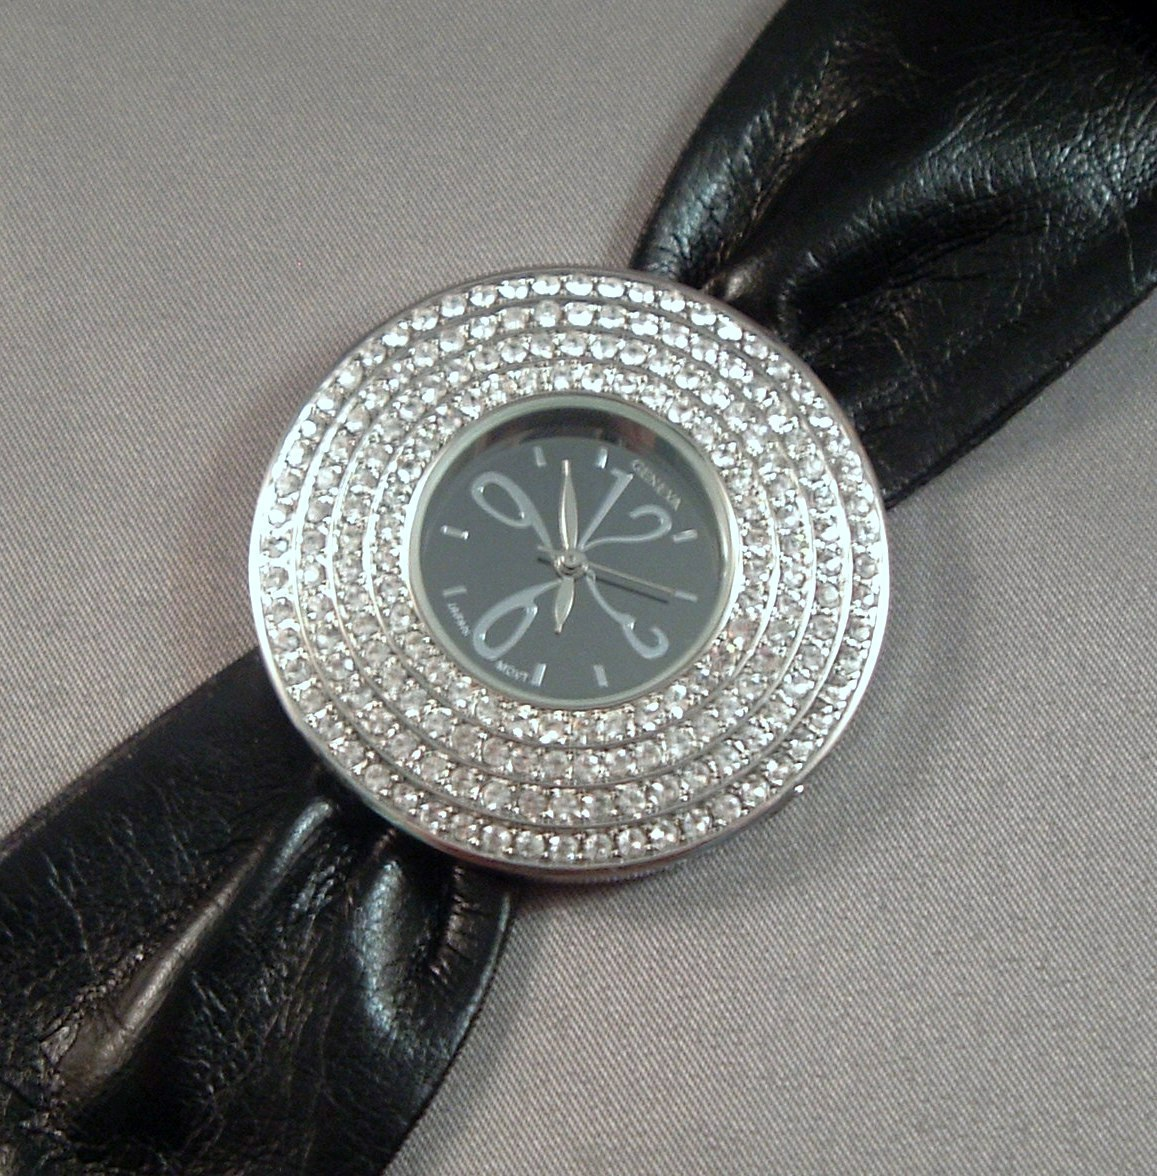 BOLD BLACK Band Strap Round Face Clear Crystal Watch